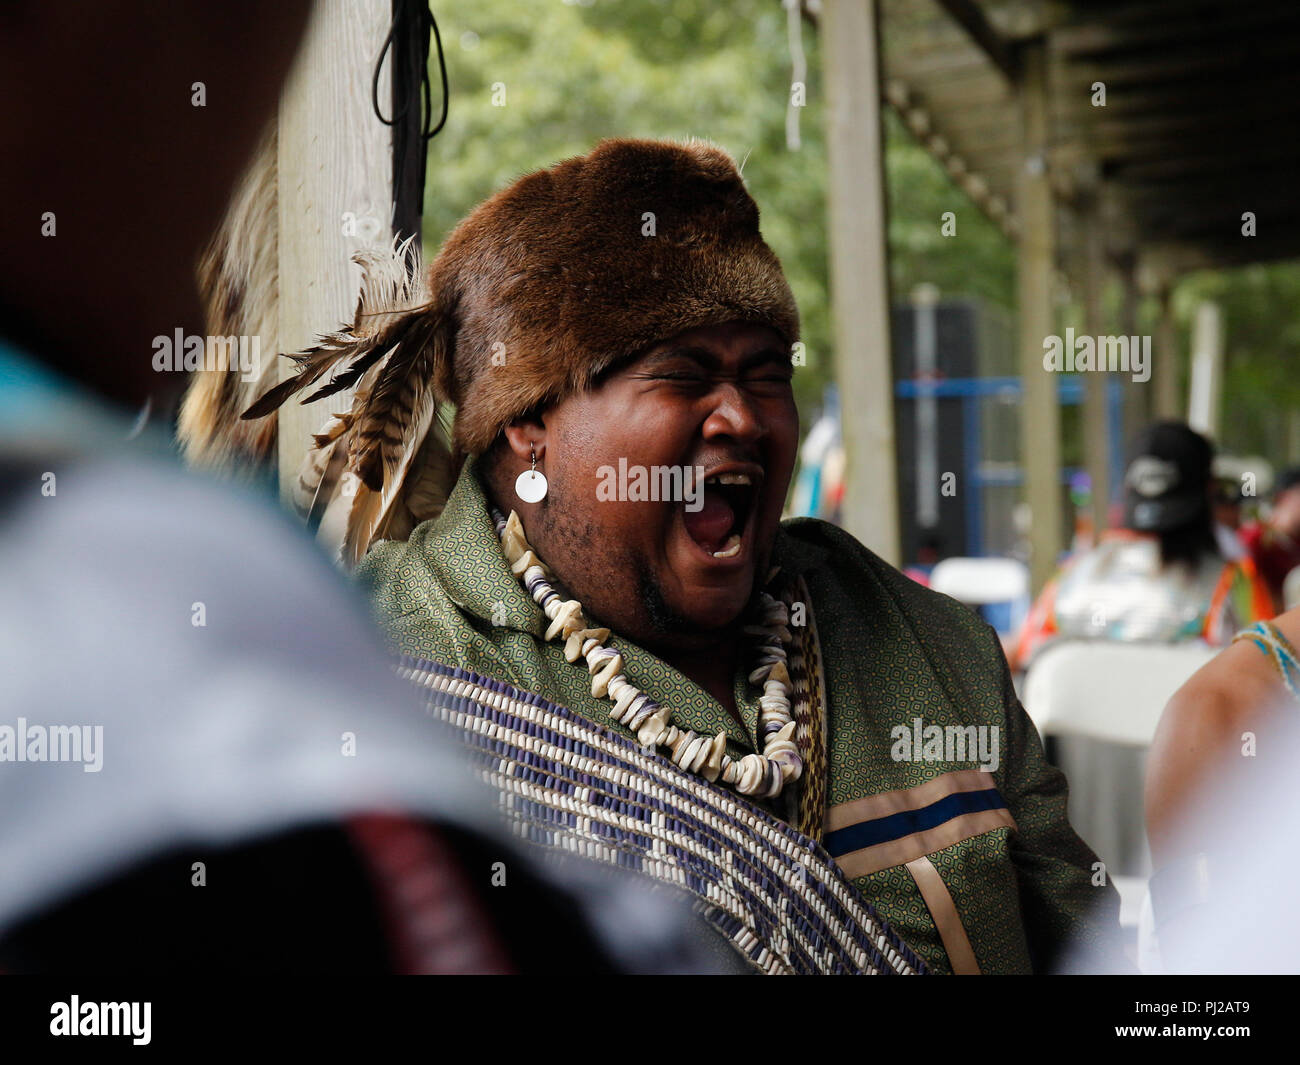 Southhampton, United States of America. 03rd, Sep 2018. A Native American singing with the group before the presentation to the ceremony 72nd annual Shinnecock Indian Powwow over the Labour Day weekend in Southampton Long Island New York in Southhampton, United States of America, 03 September 2018. (PHOTO) Alejandro Sala/Alamy News Stock Photo